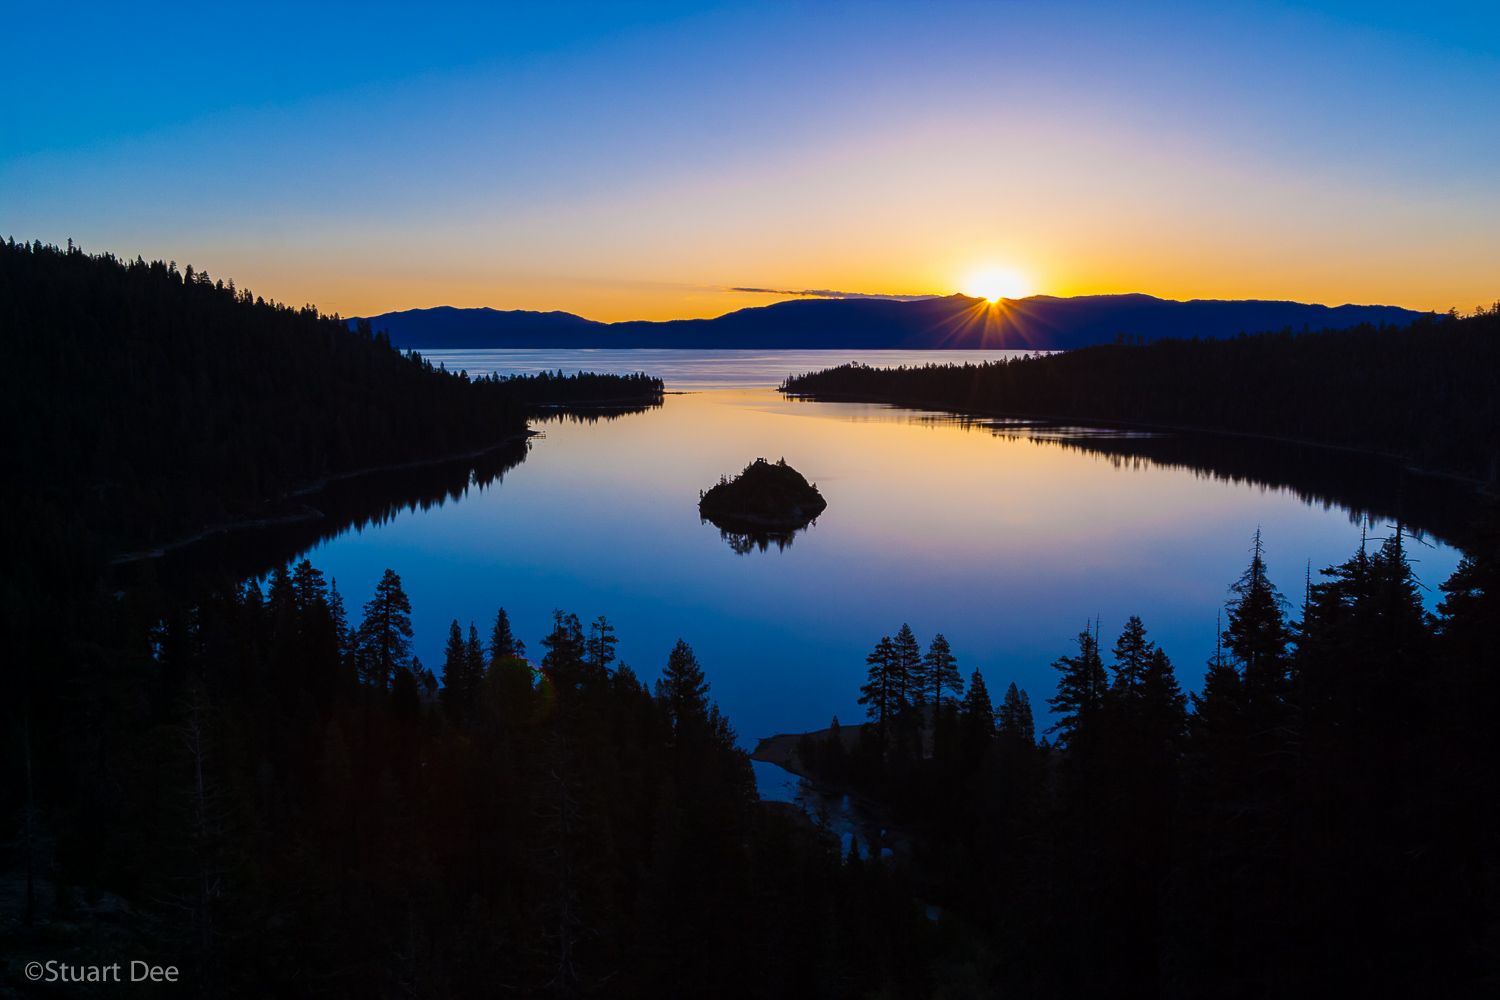 Sunrise at Emerald Bay, showing Fannette Island, Lake Tahoe, California, USA